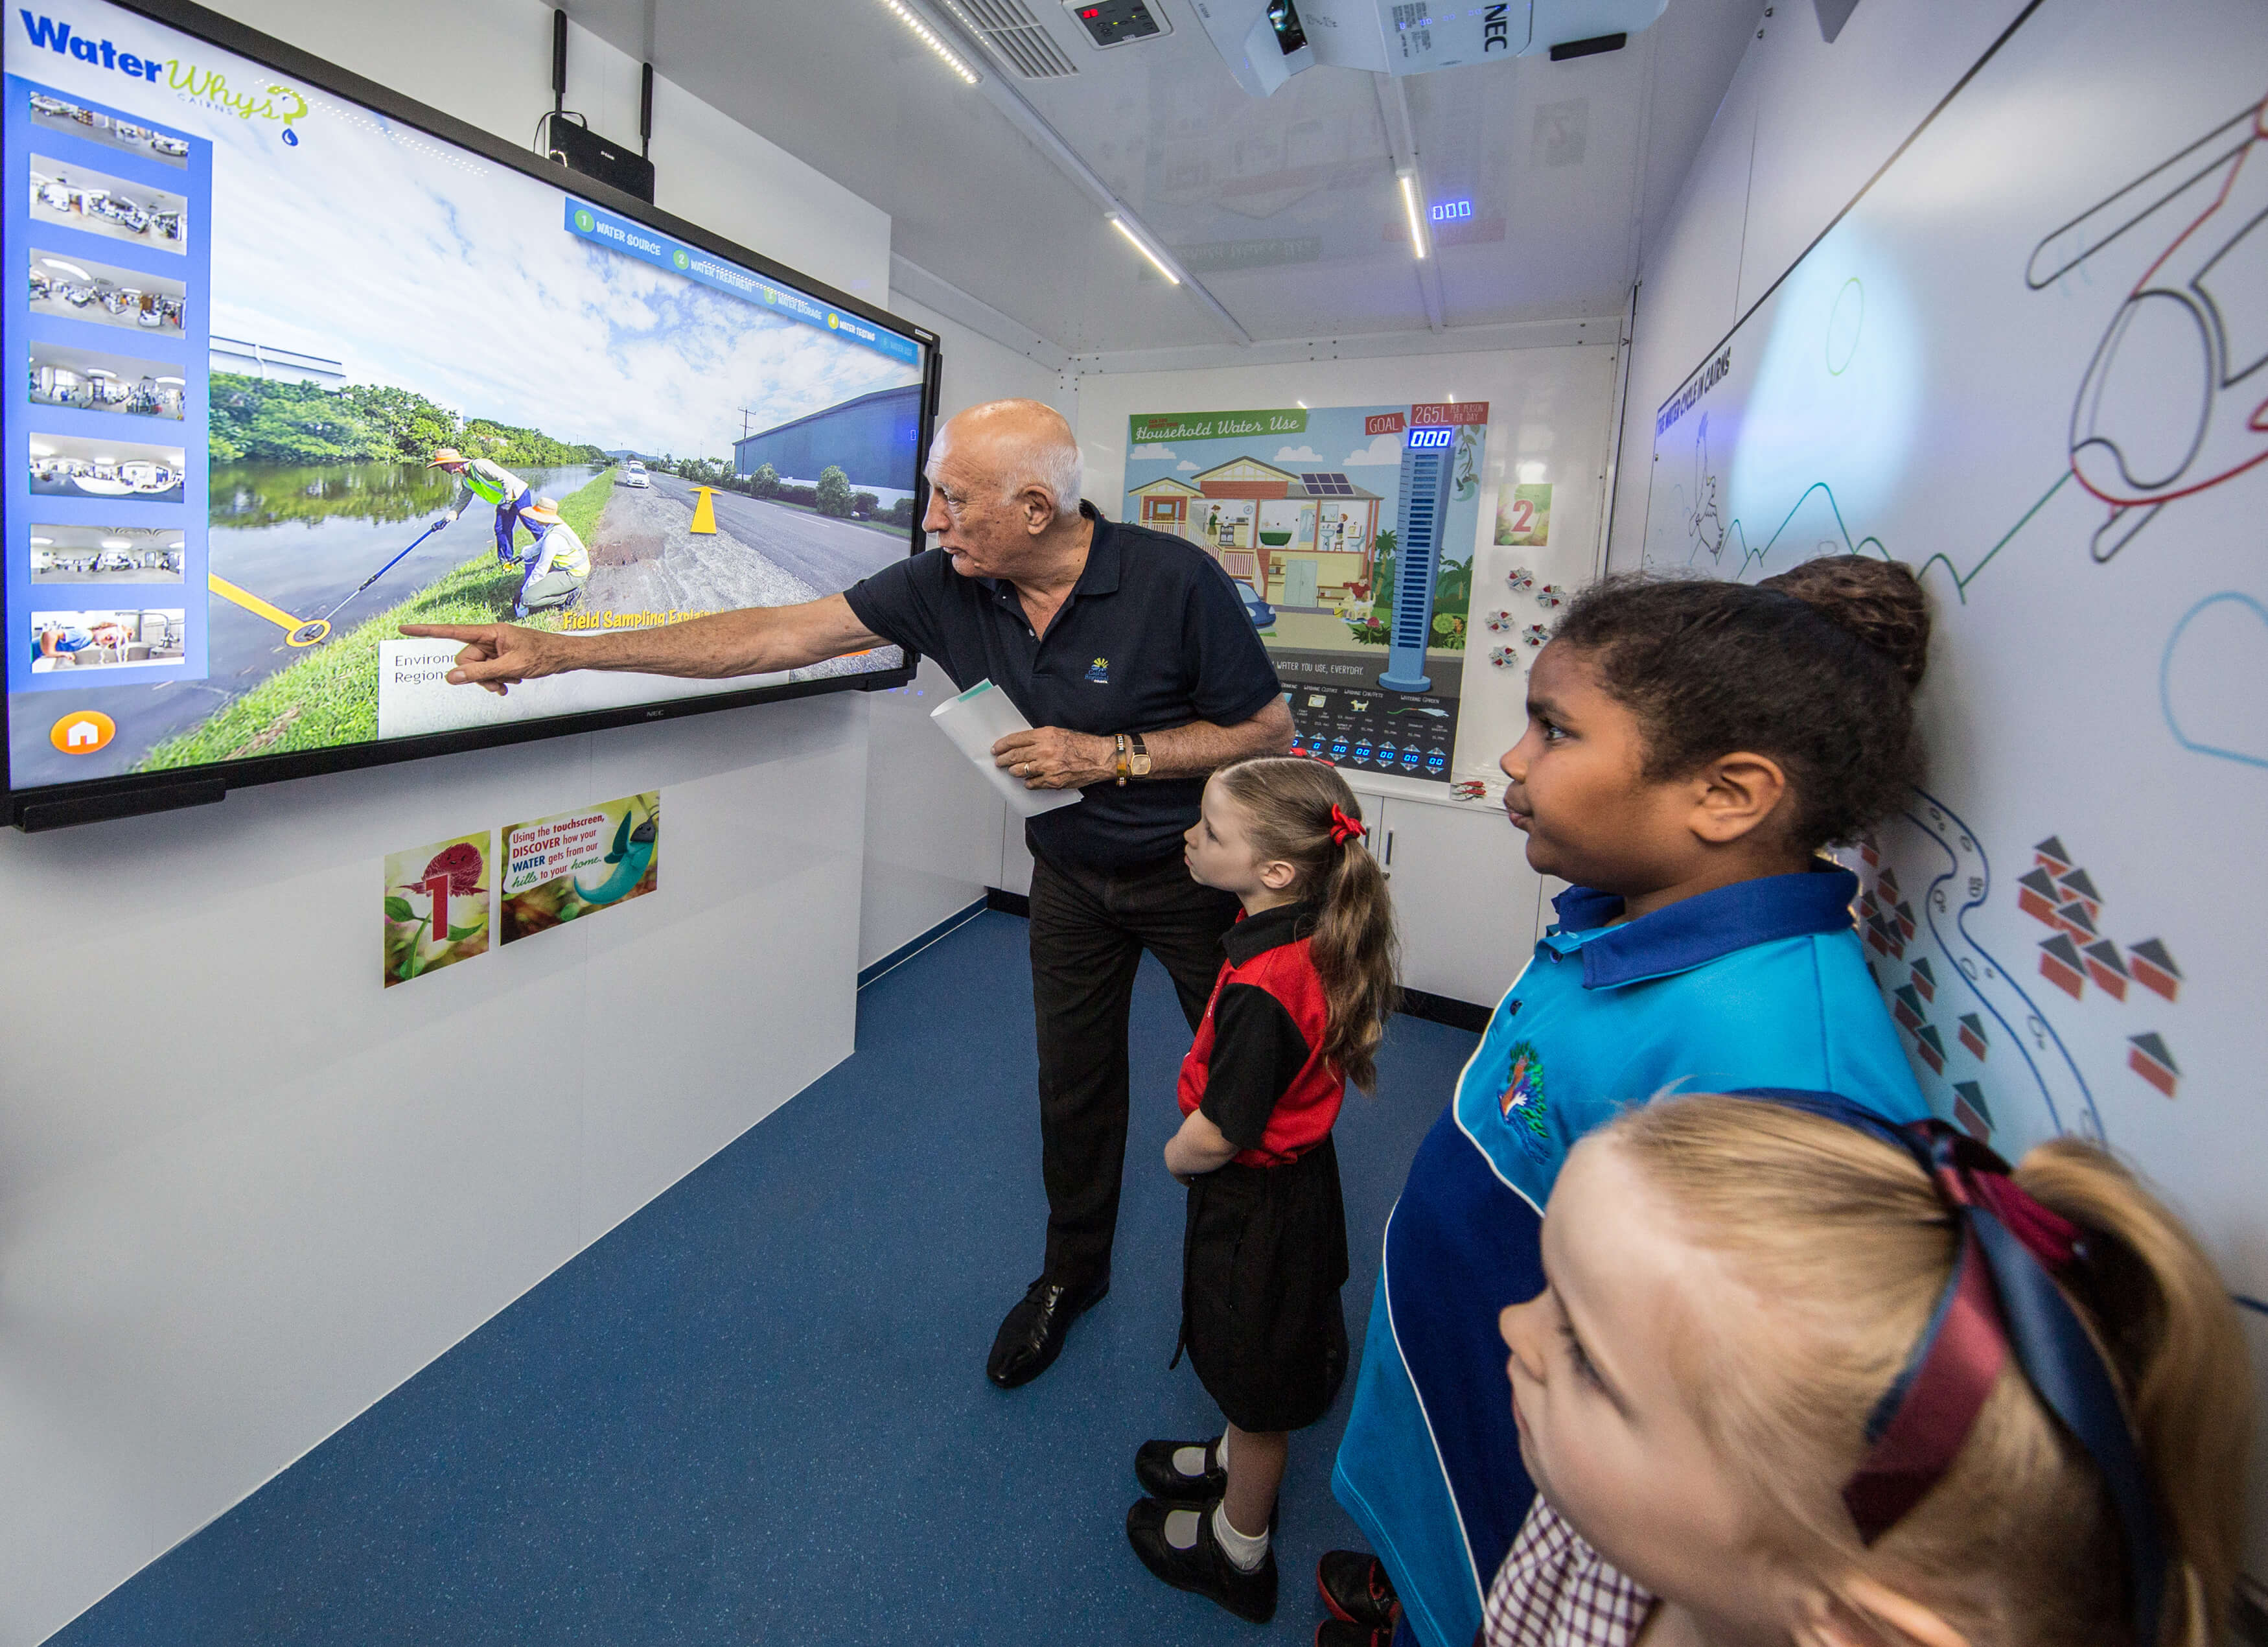 cairns water whys touchscreen interactive